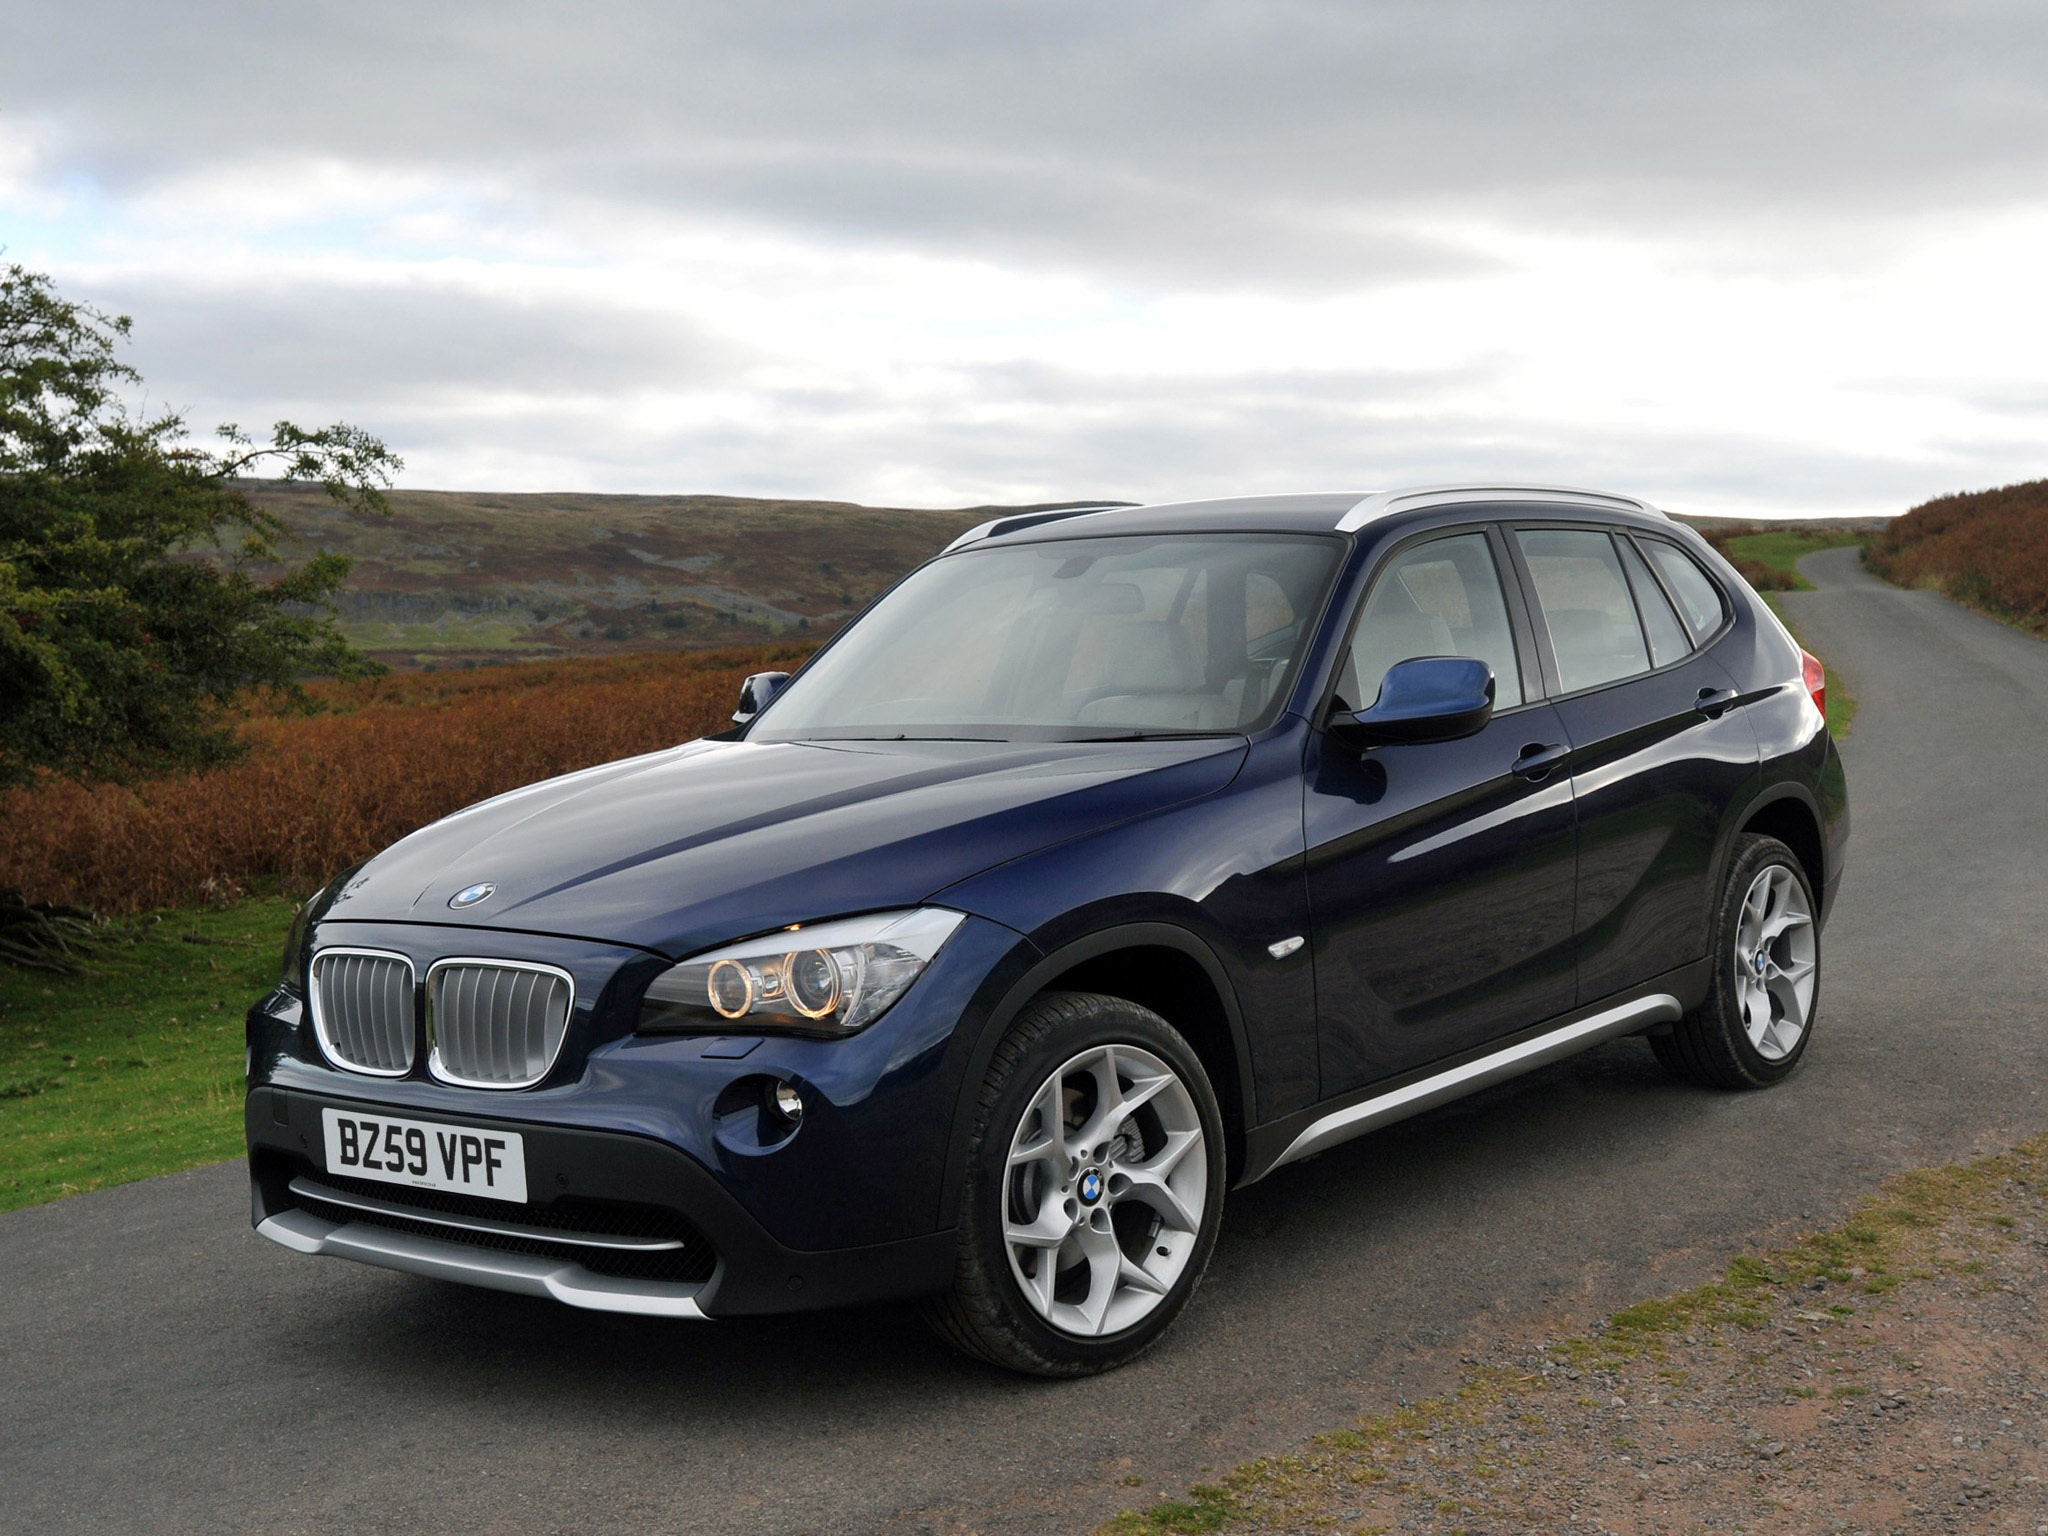 bmw x1 xdrive20d uk e84 2009 bmw x1 xdrive20d uk e84 2009 photo 09 car in pictures car photo. Black Bedroom Furniture Sets. Home Design Ideas